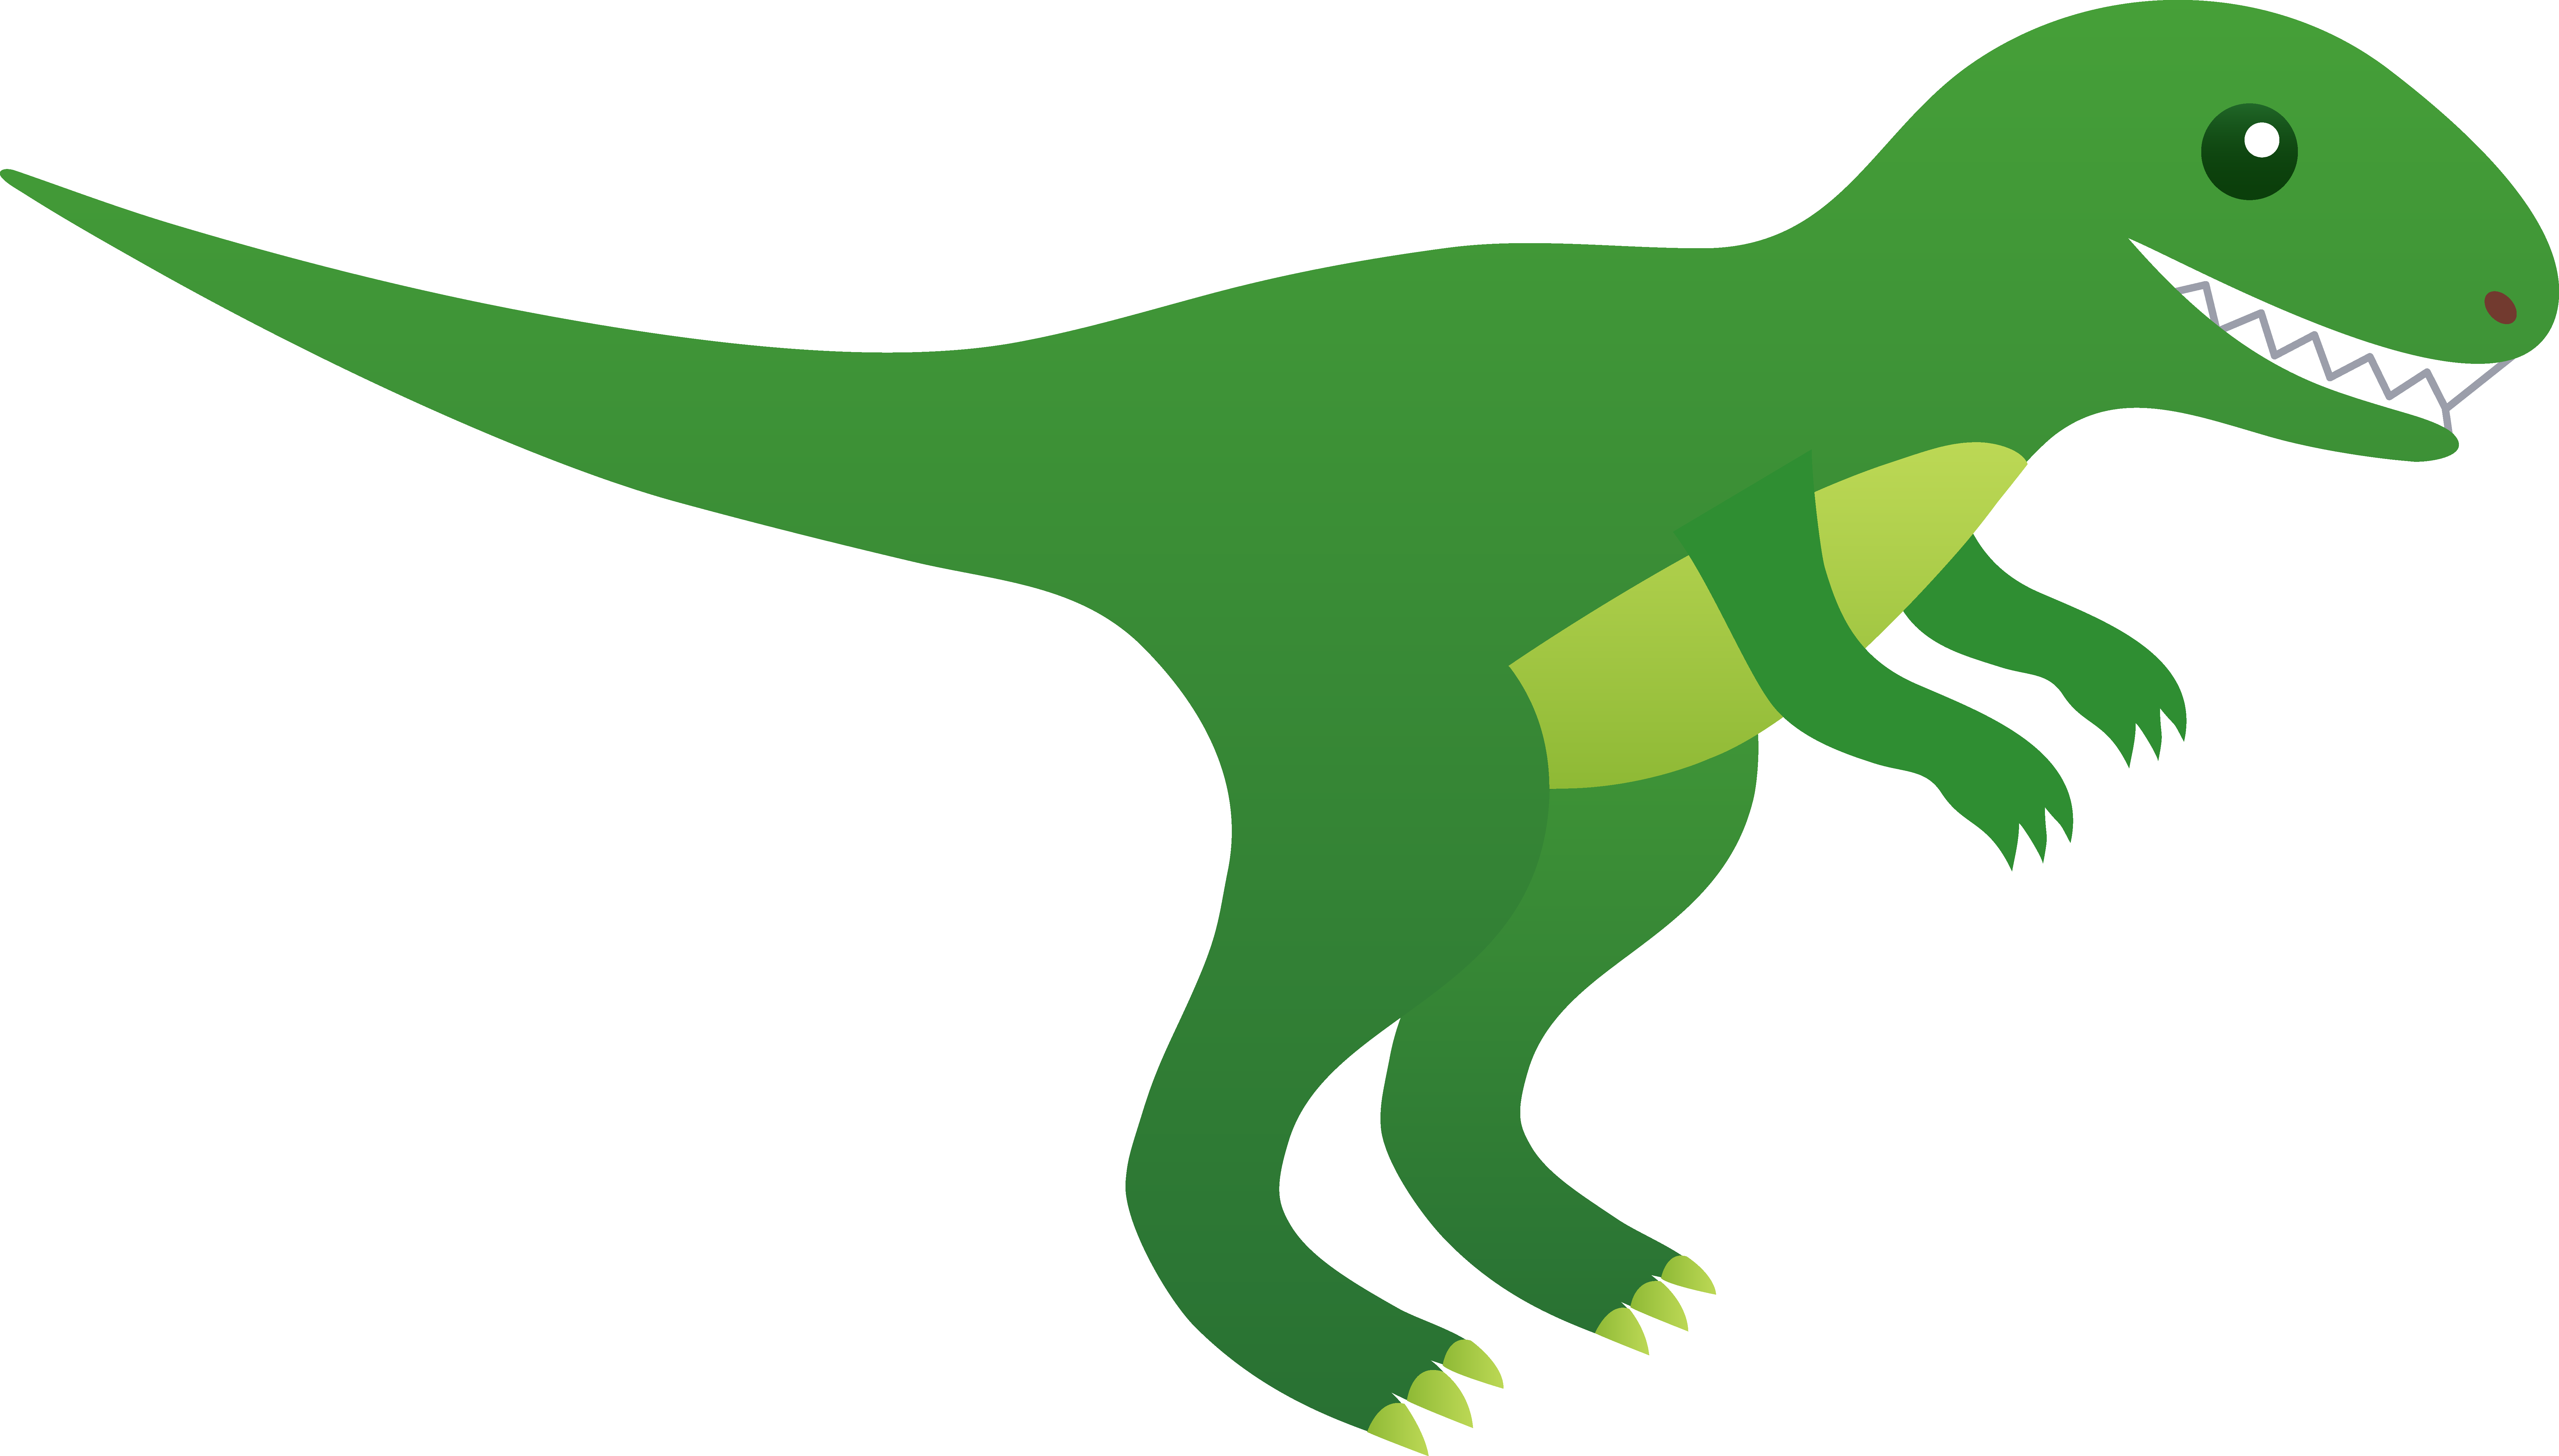 vector black and white download T Rex Dinosaur Free Clipart